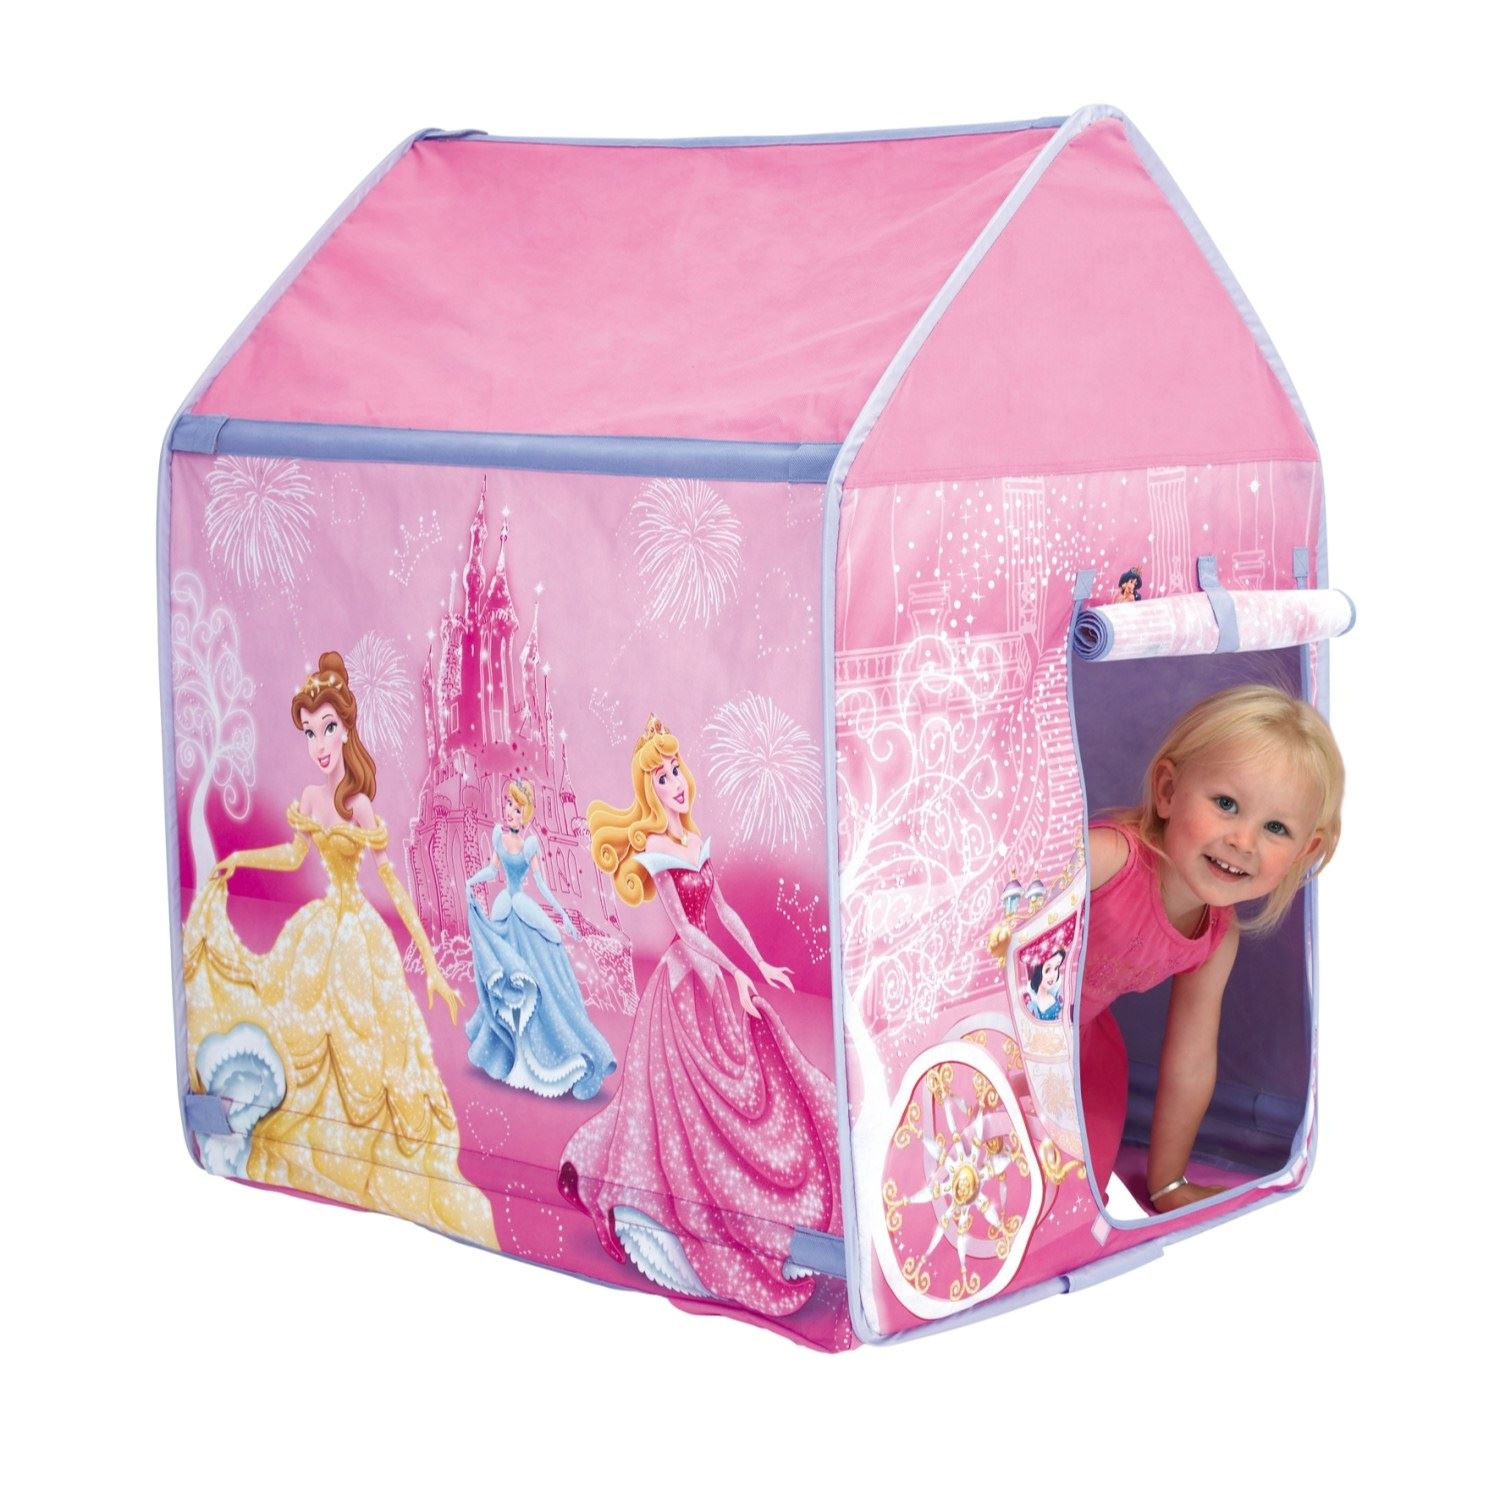 ENFANTS DISNEY AND CHARACTER POP UP TENTE DE JEU MAISONNETTE